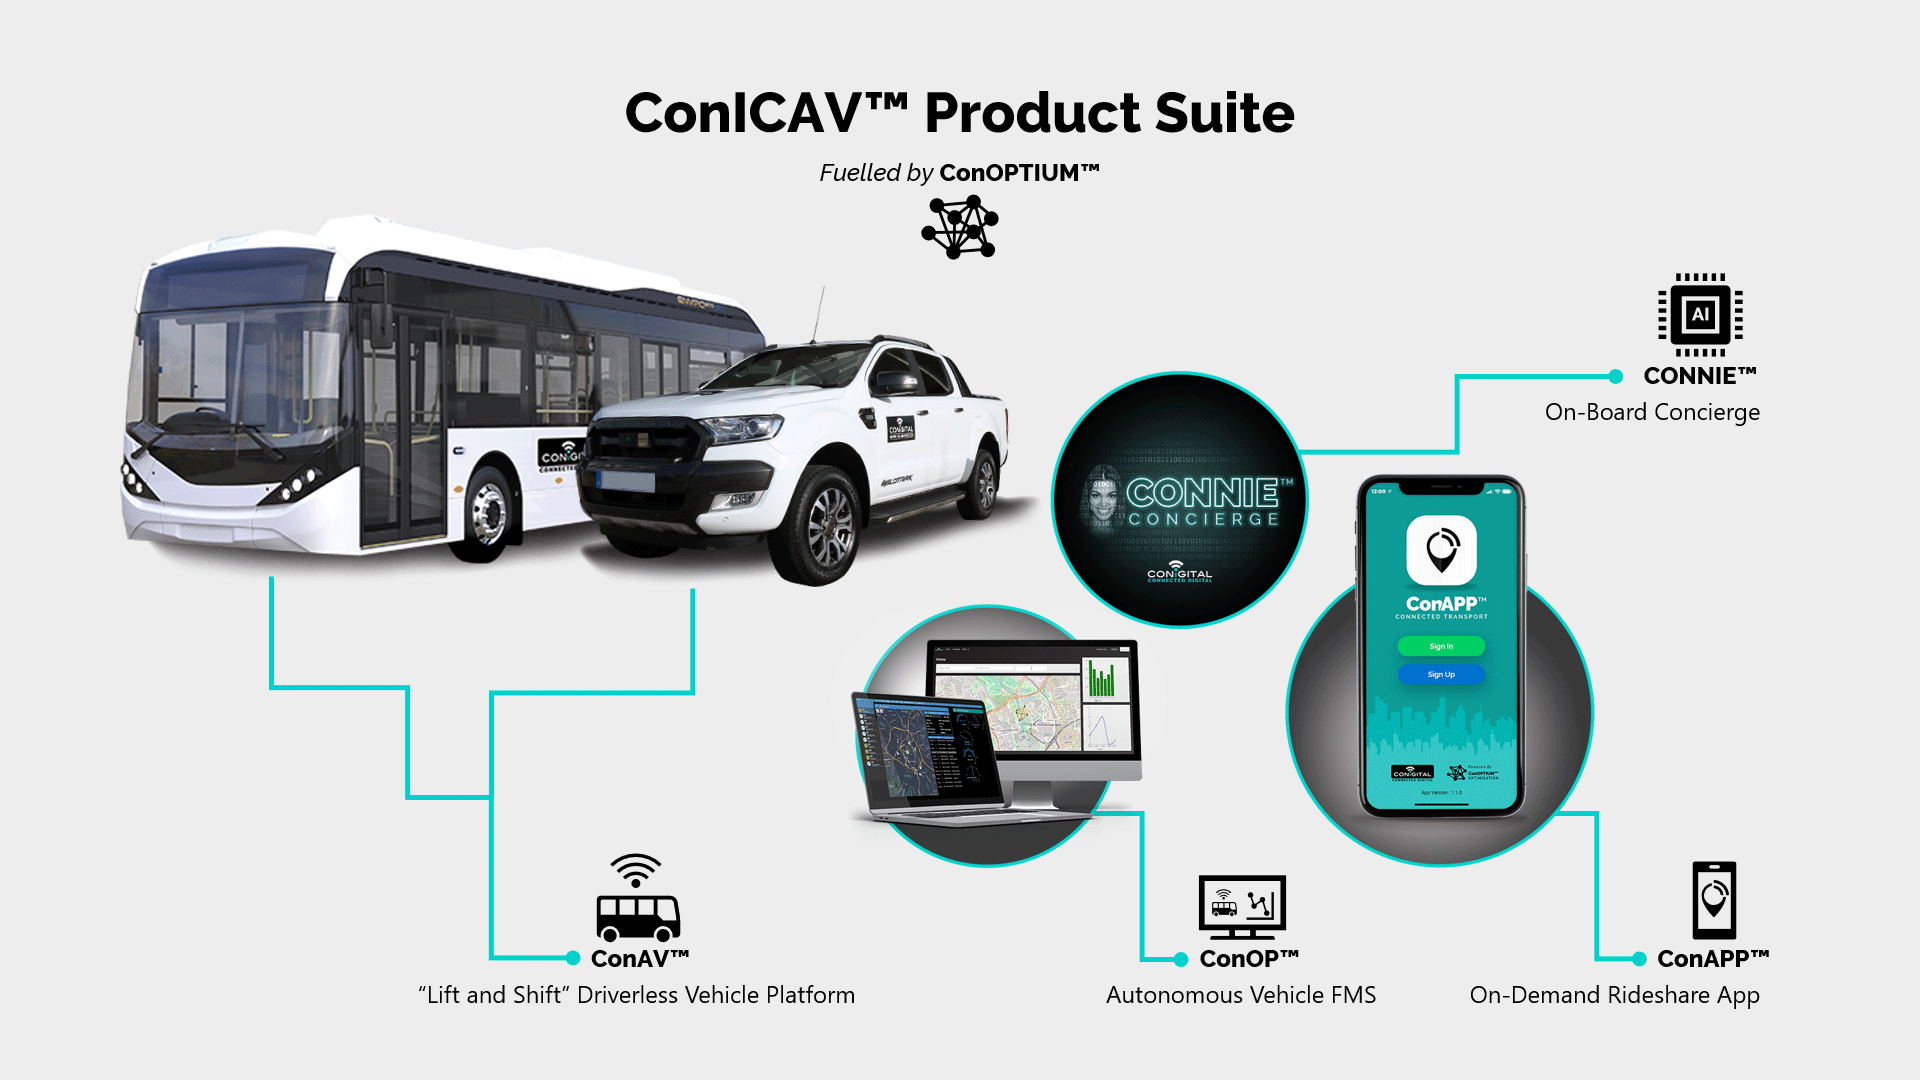 ConICAV Product Suite